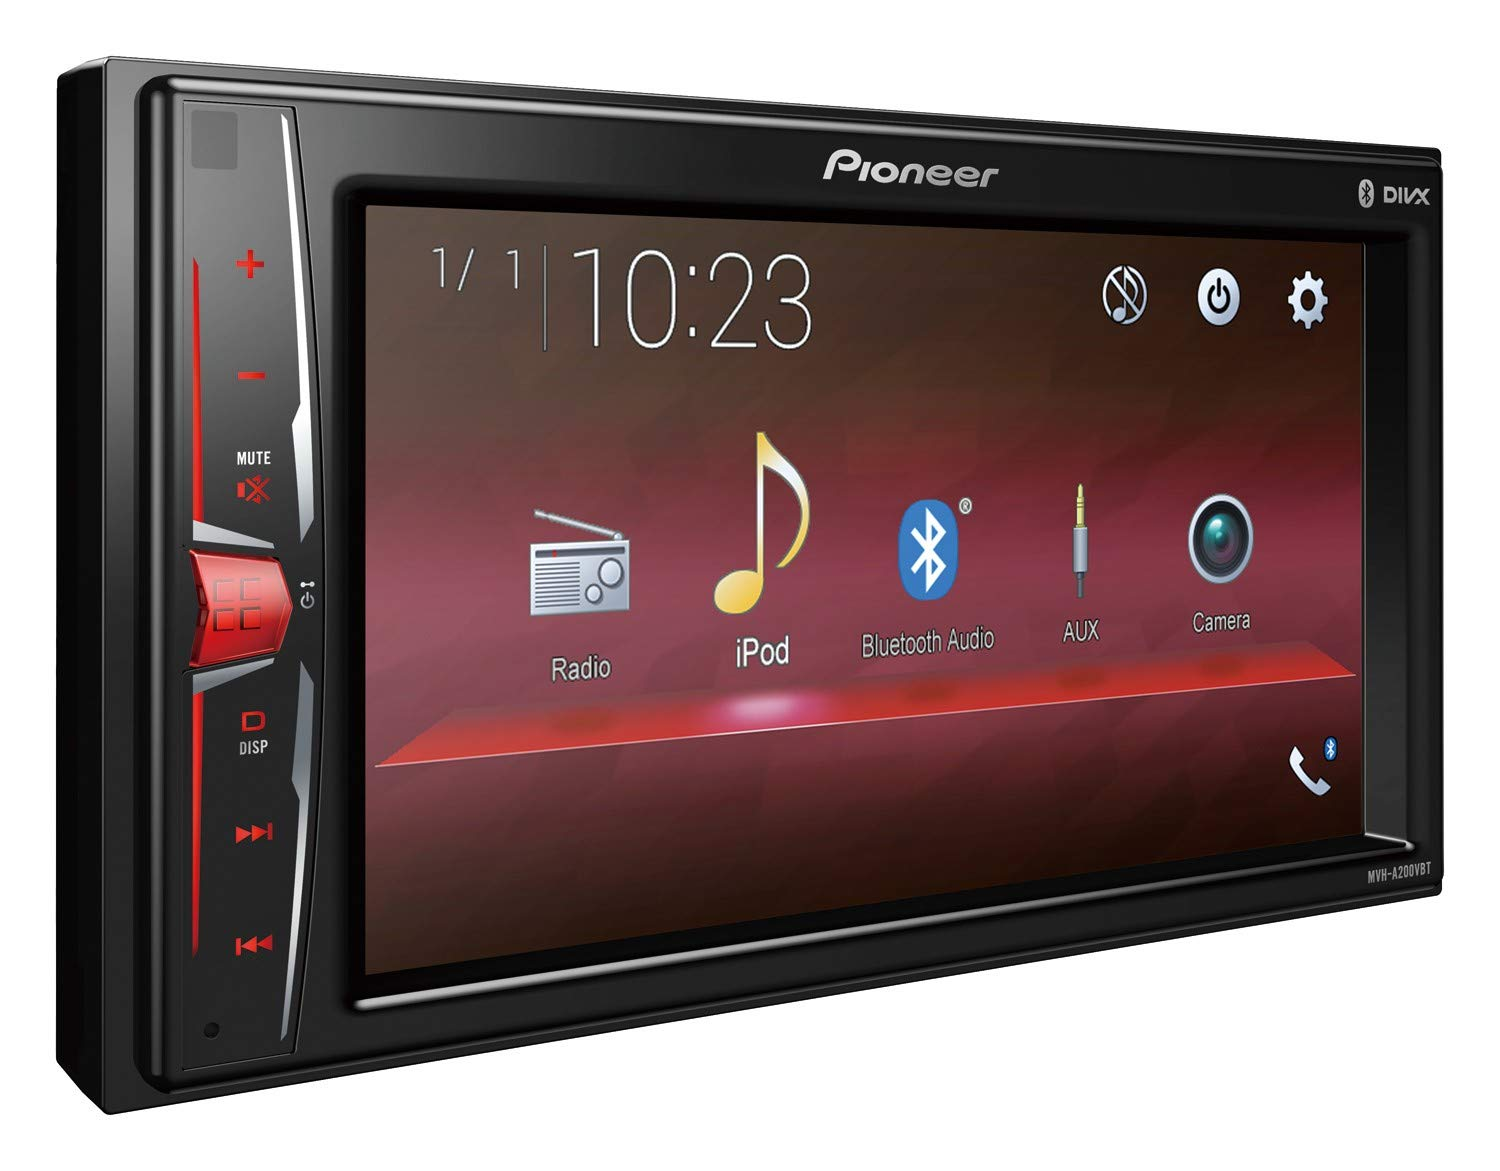 Pioneer-mvh-a200vbt-157-cm-Auto-Touchscreen-Multimedia-Receiver